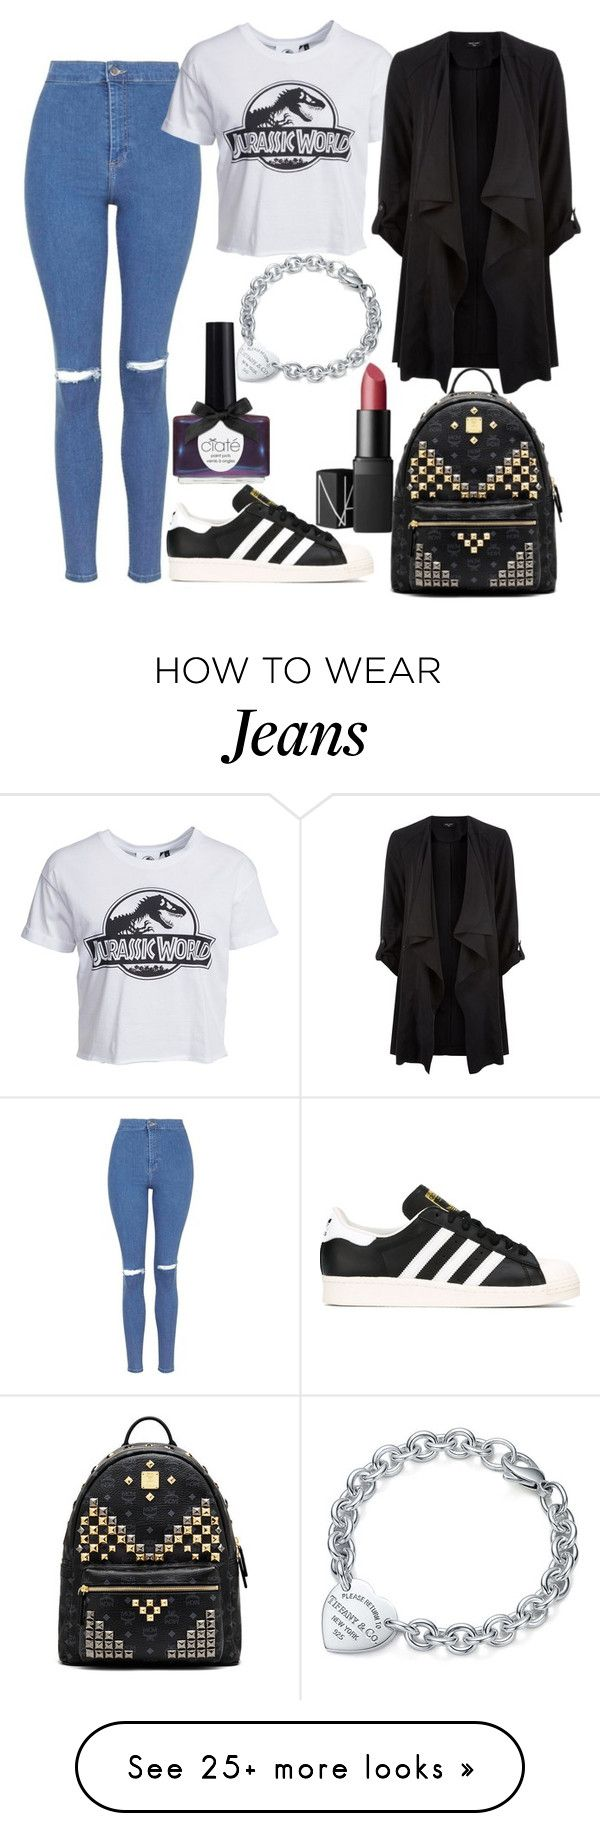 """""""Untitled#12579"""" by mihai-theodora on Polyvore featuring Topshop, New Look, NARS Cosmetics, adidas, Ciaté and Tiffany & Co."""